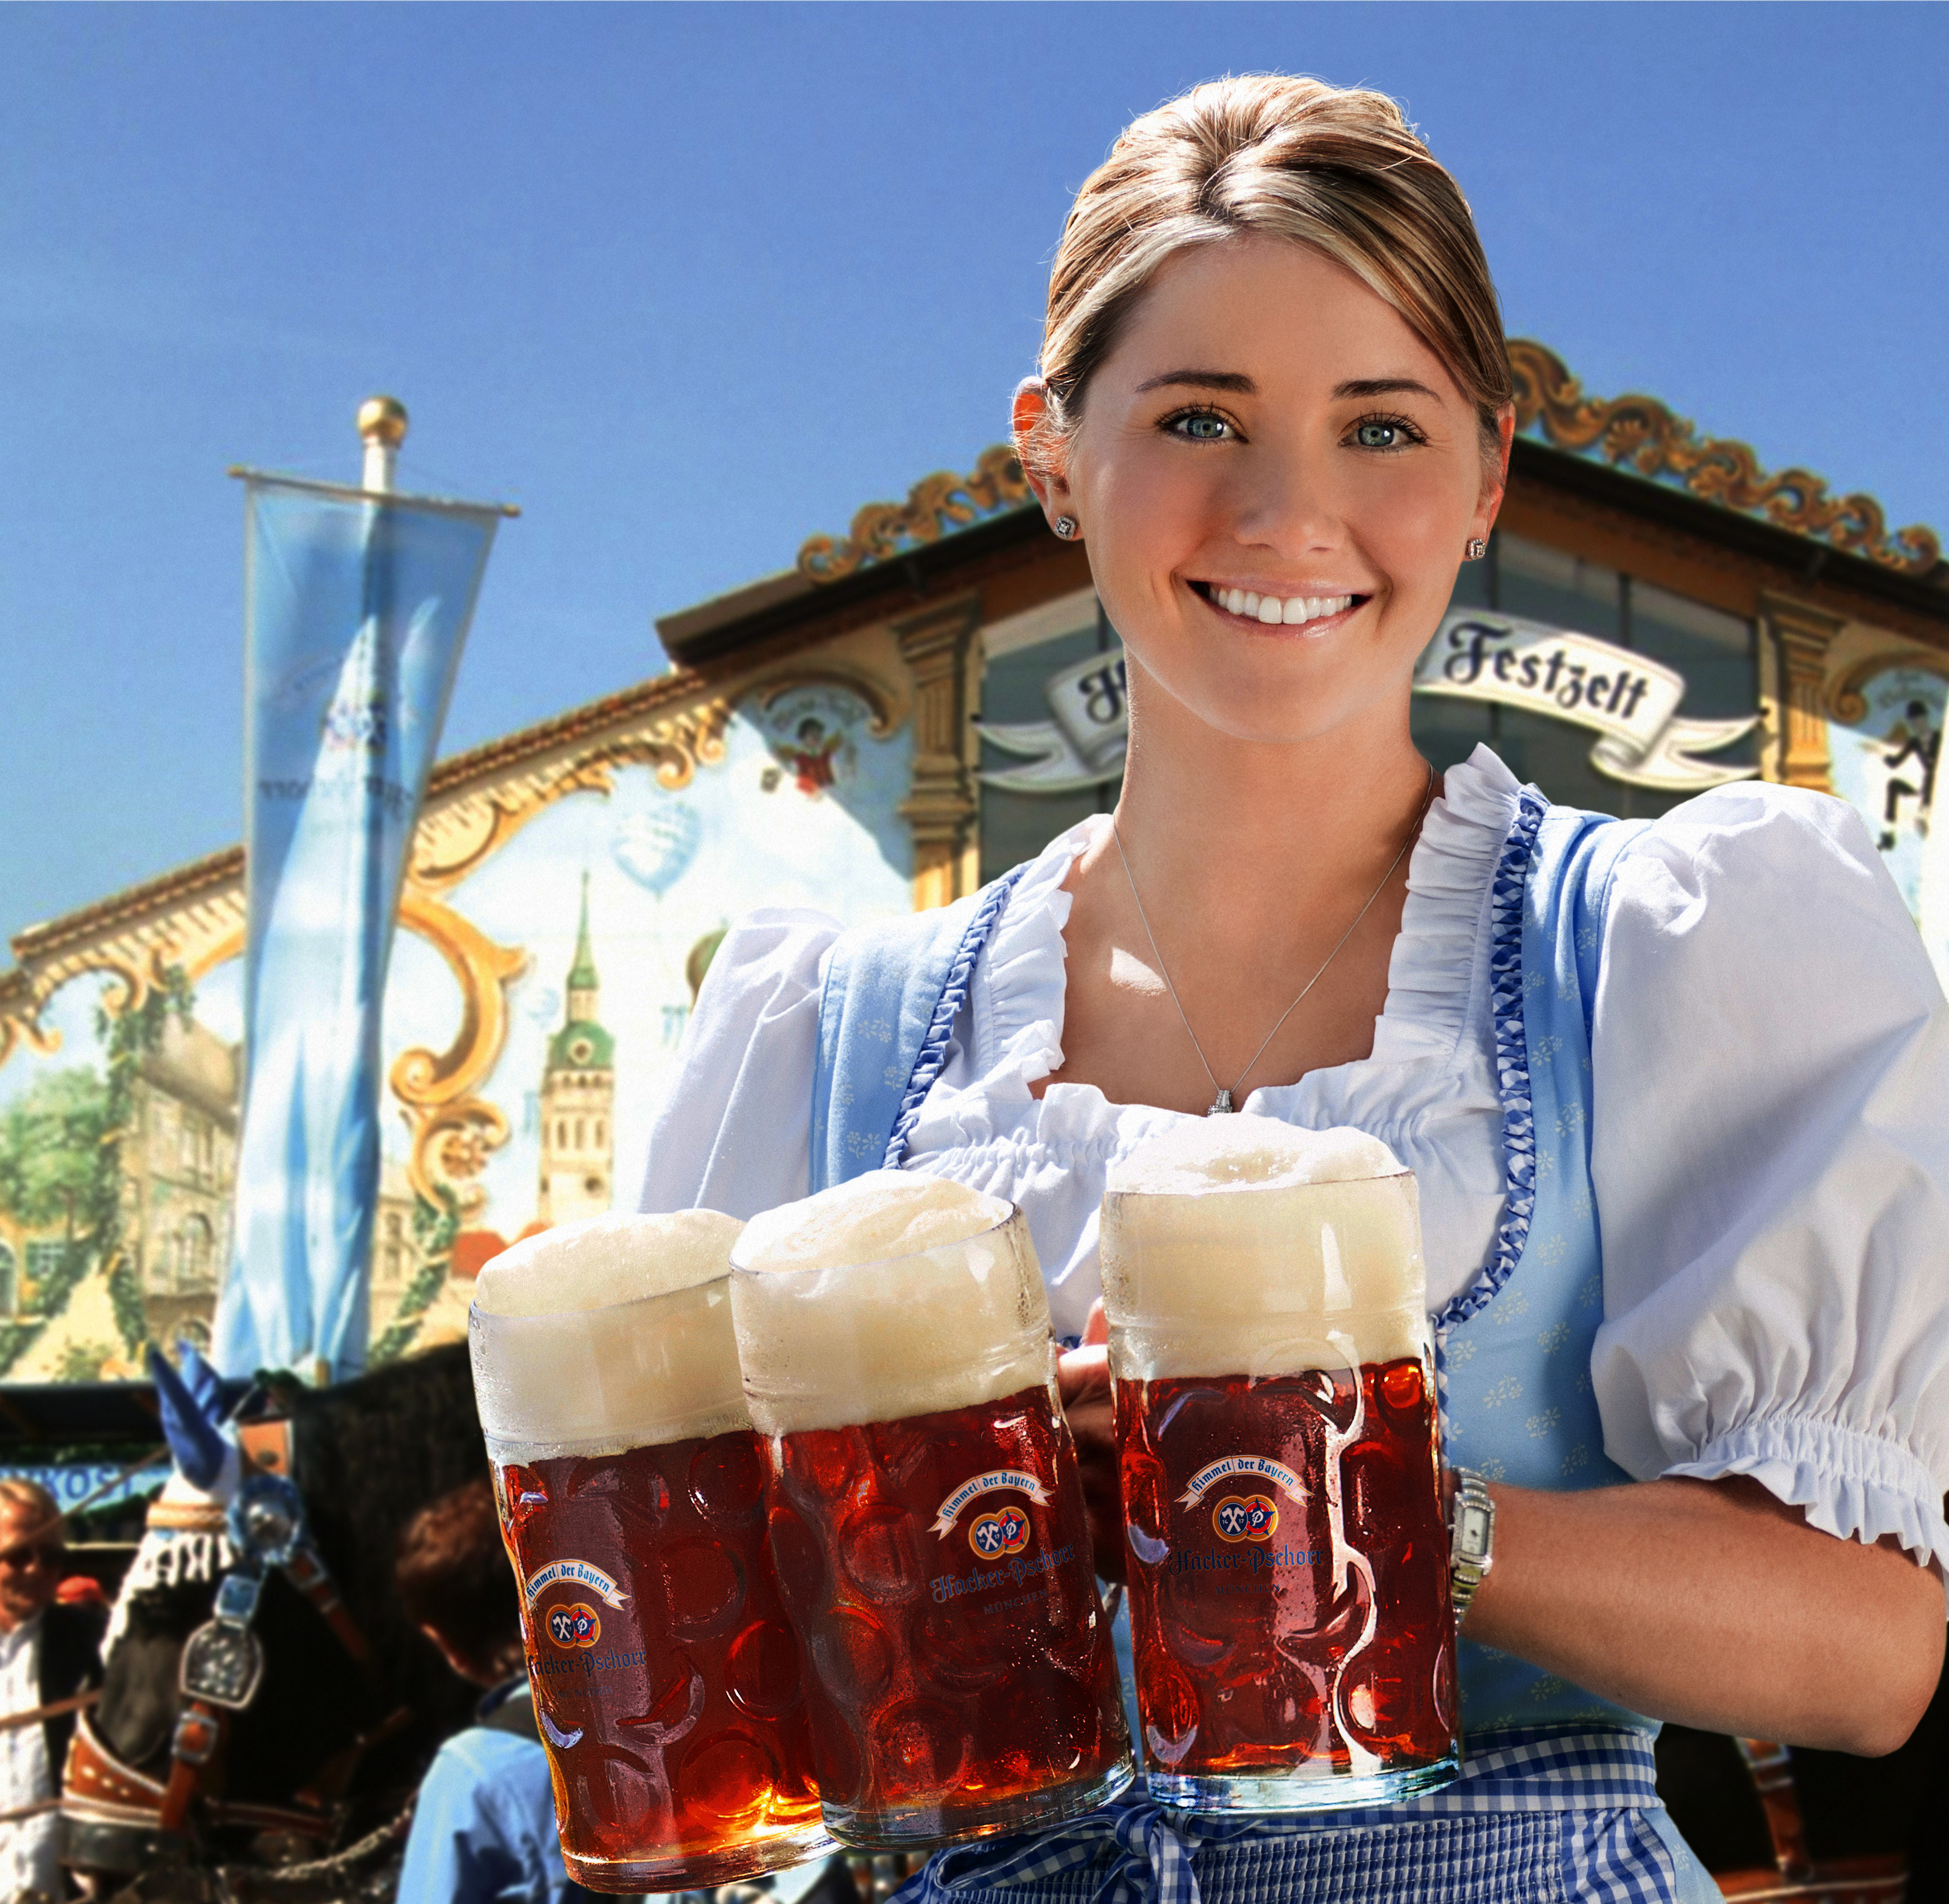 A waitress with Hacker-Pschorr, one of the traditional beers allowed to be served at Oktoberfest. She wears a dirndl, a traditional women's dress of Bavaria. Photo taken by Mark Burger in 2011.